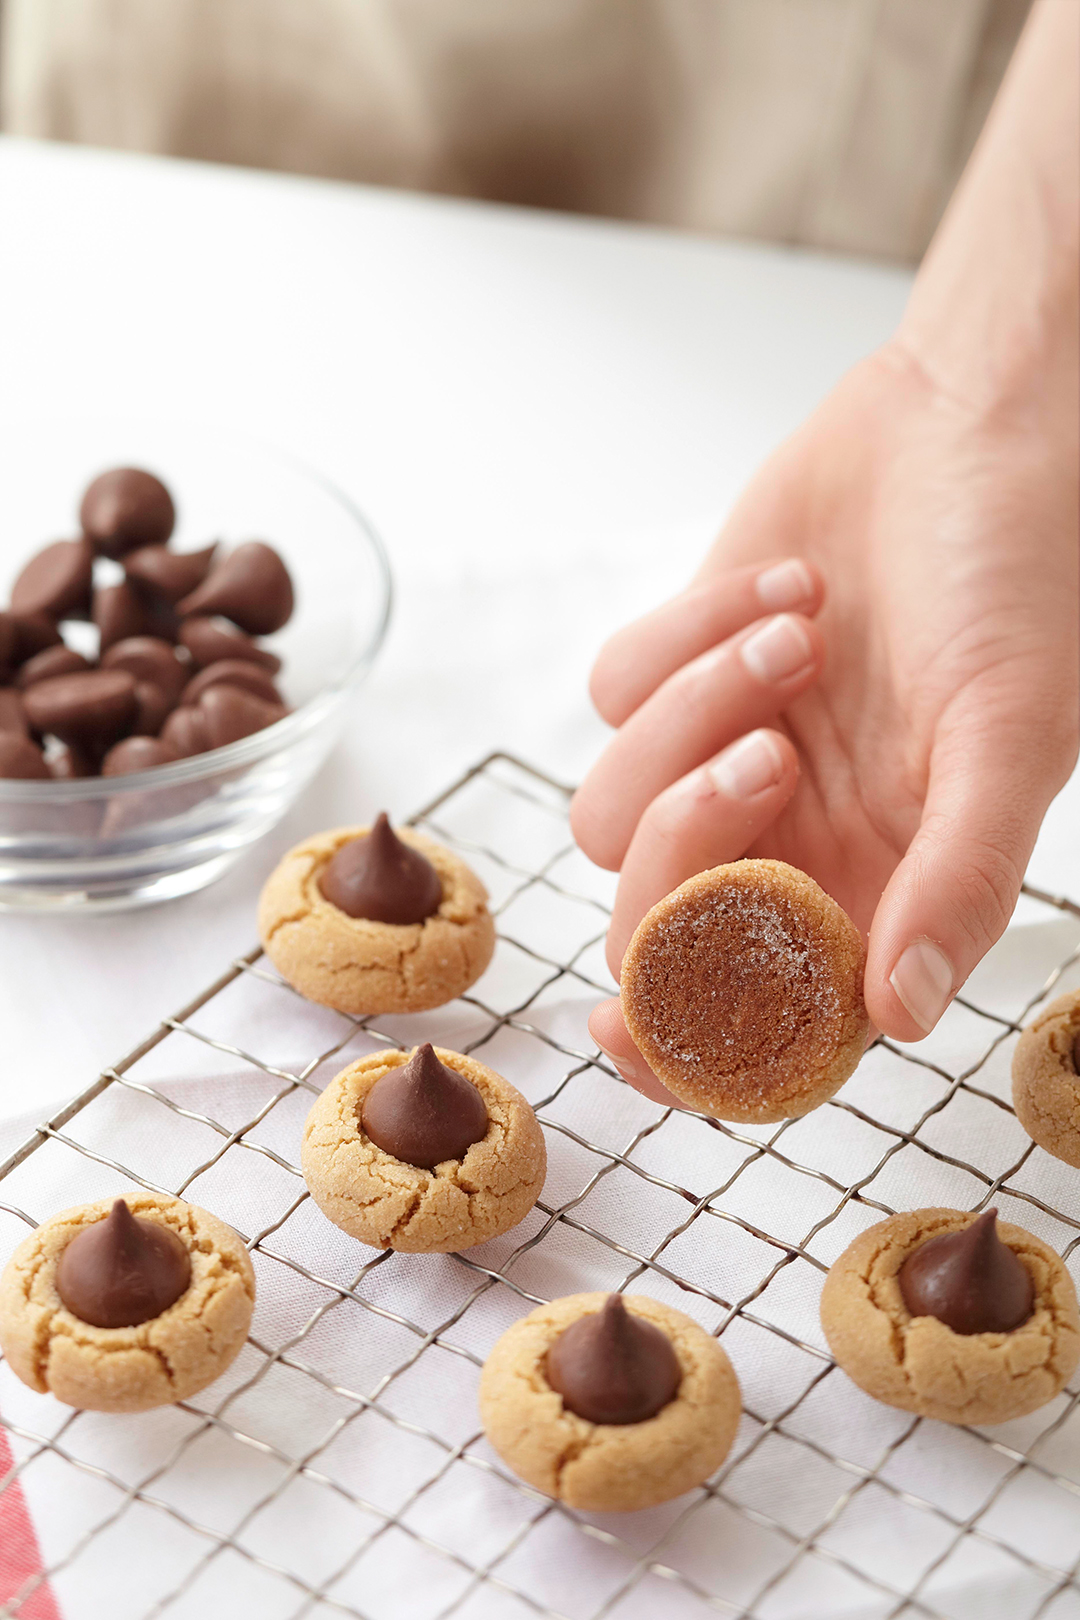 Picking up peanut butter blossom from wire rack to check bottom of cookie for doneness